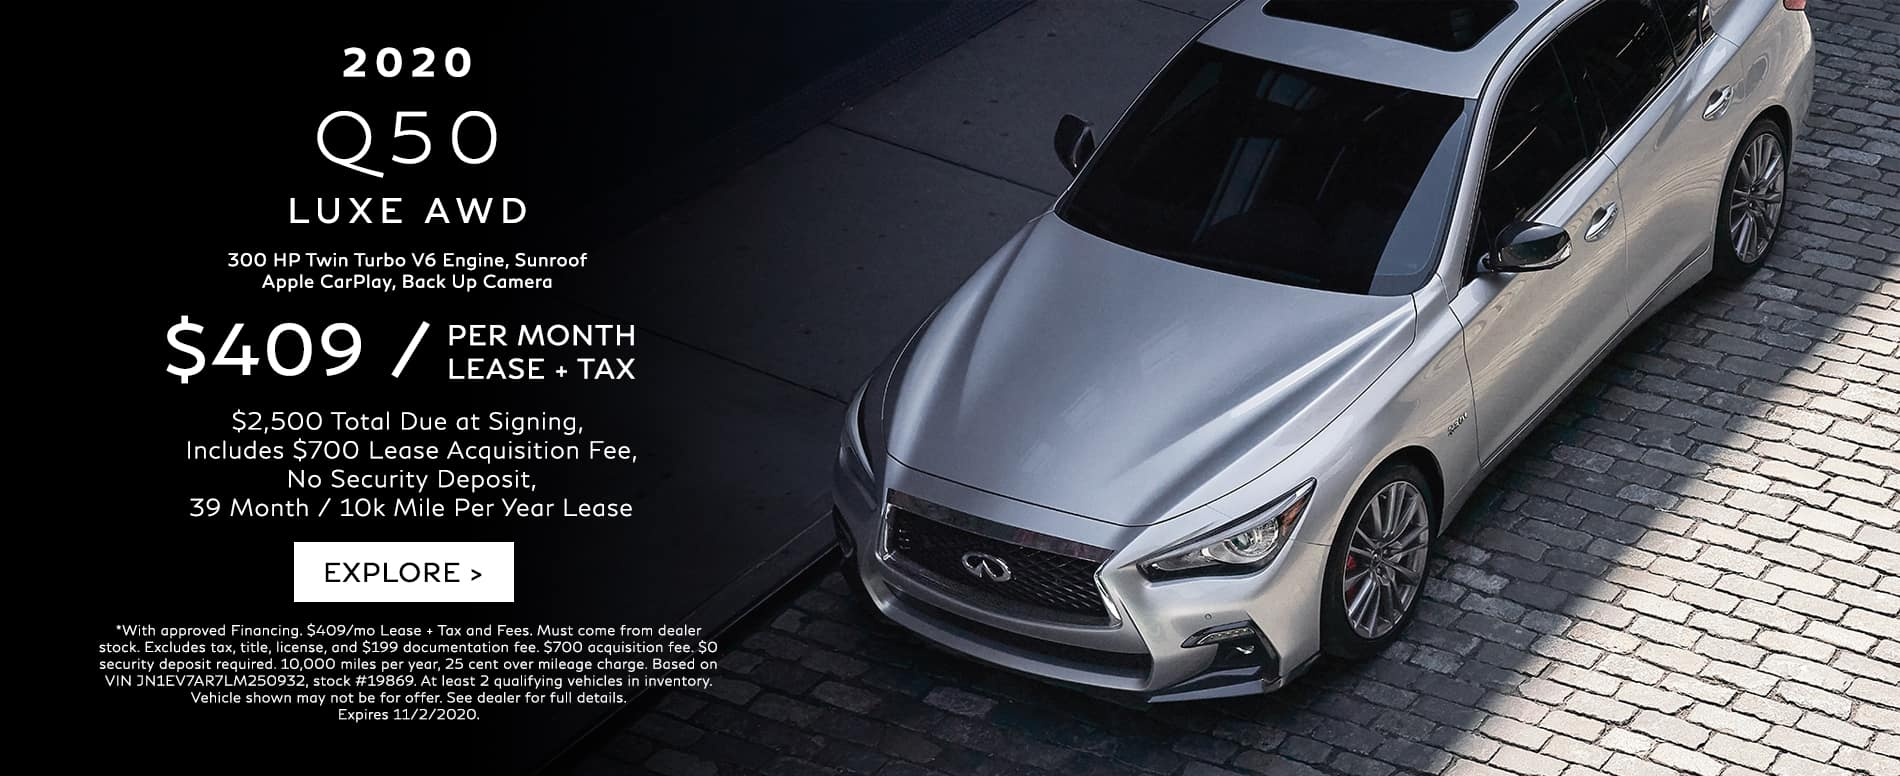 Lease a Q50 for $409/mo